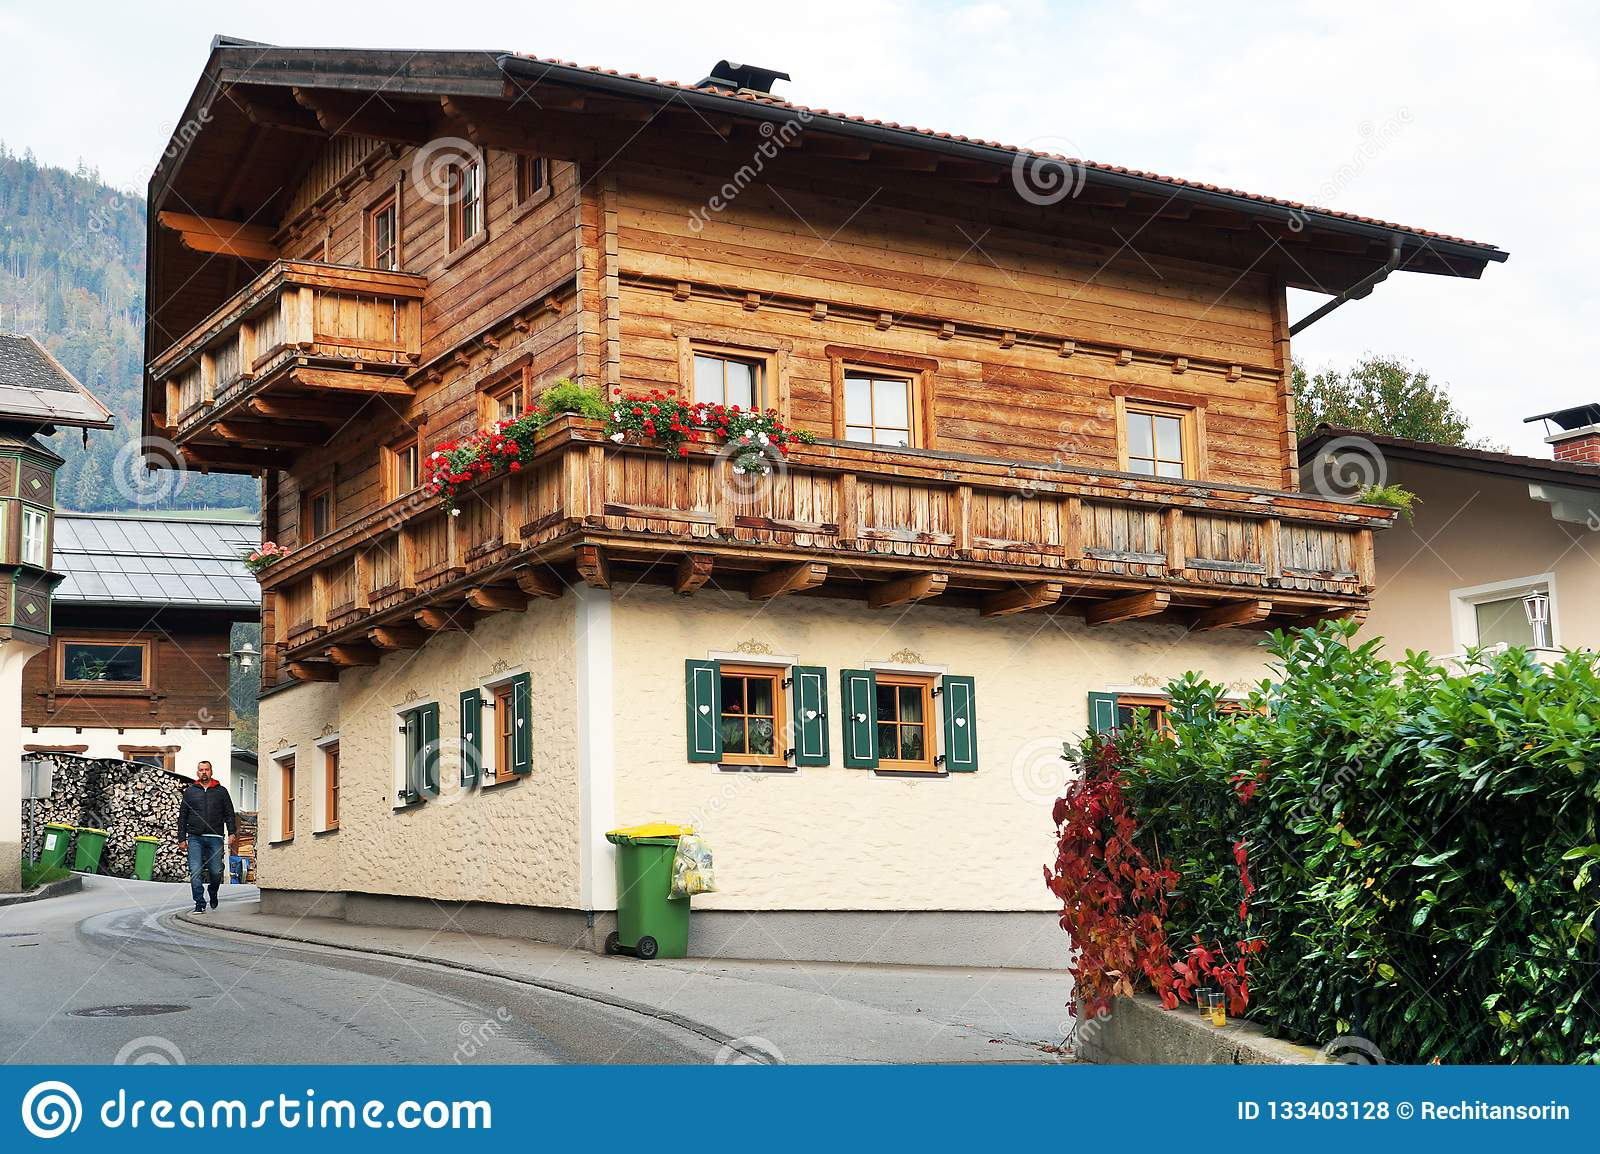 BISCHOFSHOFEN, AUSTRIA, EUROPE - 15 OCTOBER 2018: Arhitectural detail in the center of the town.